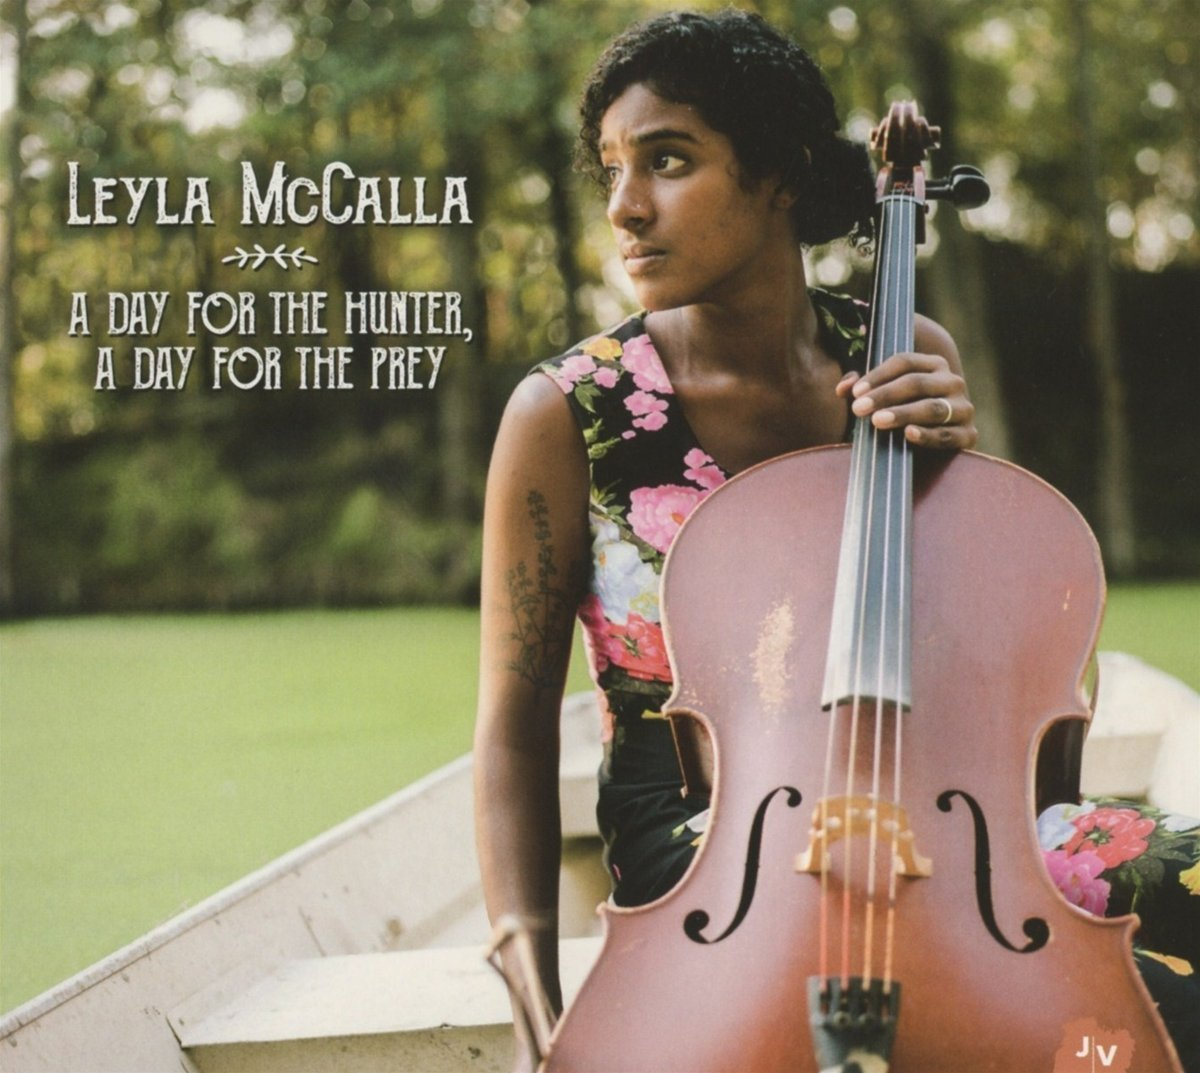 Leyla McCalla - A Day for the Hunter, A Day for the Prey (2016)